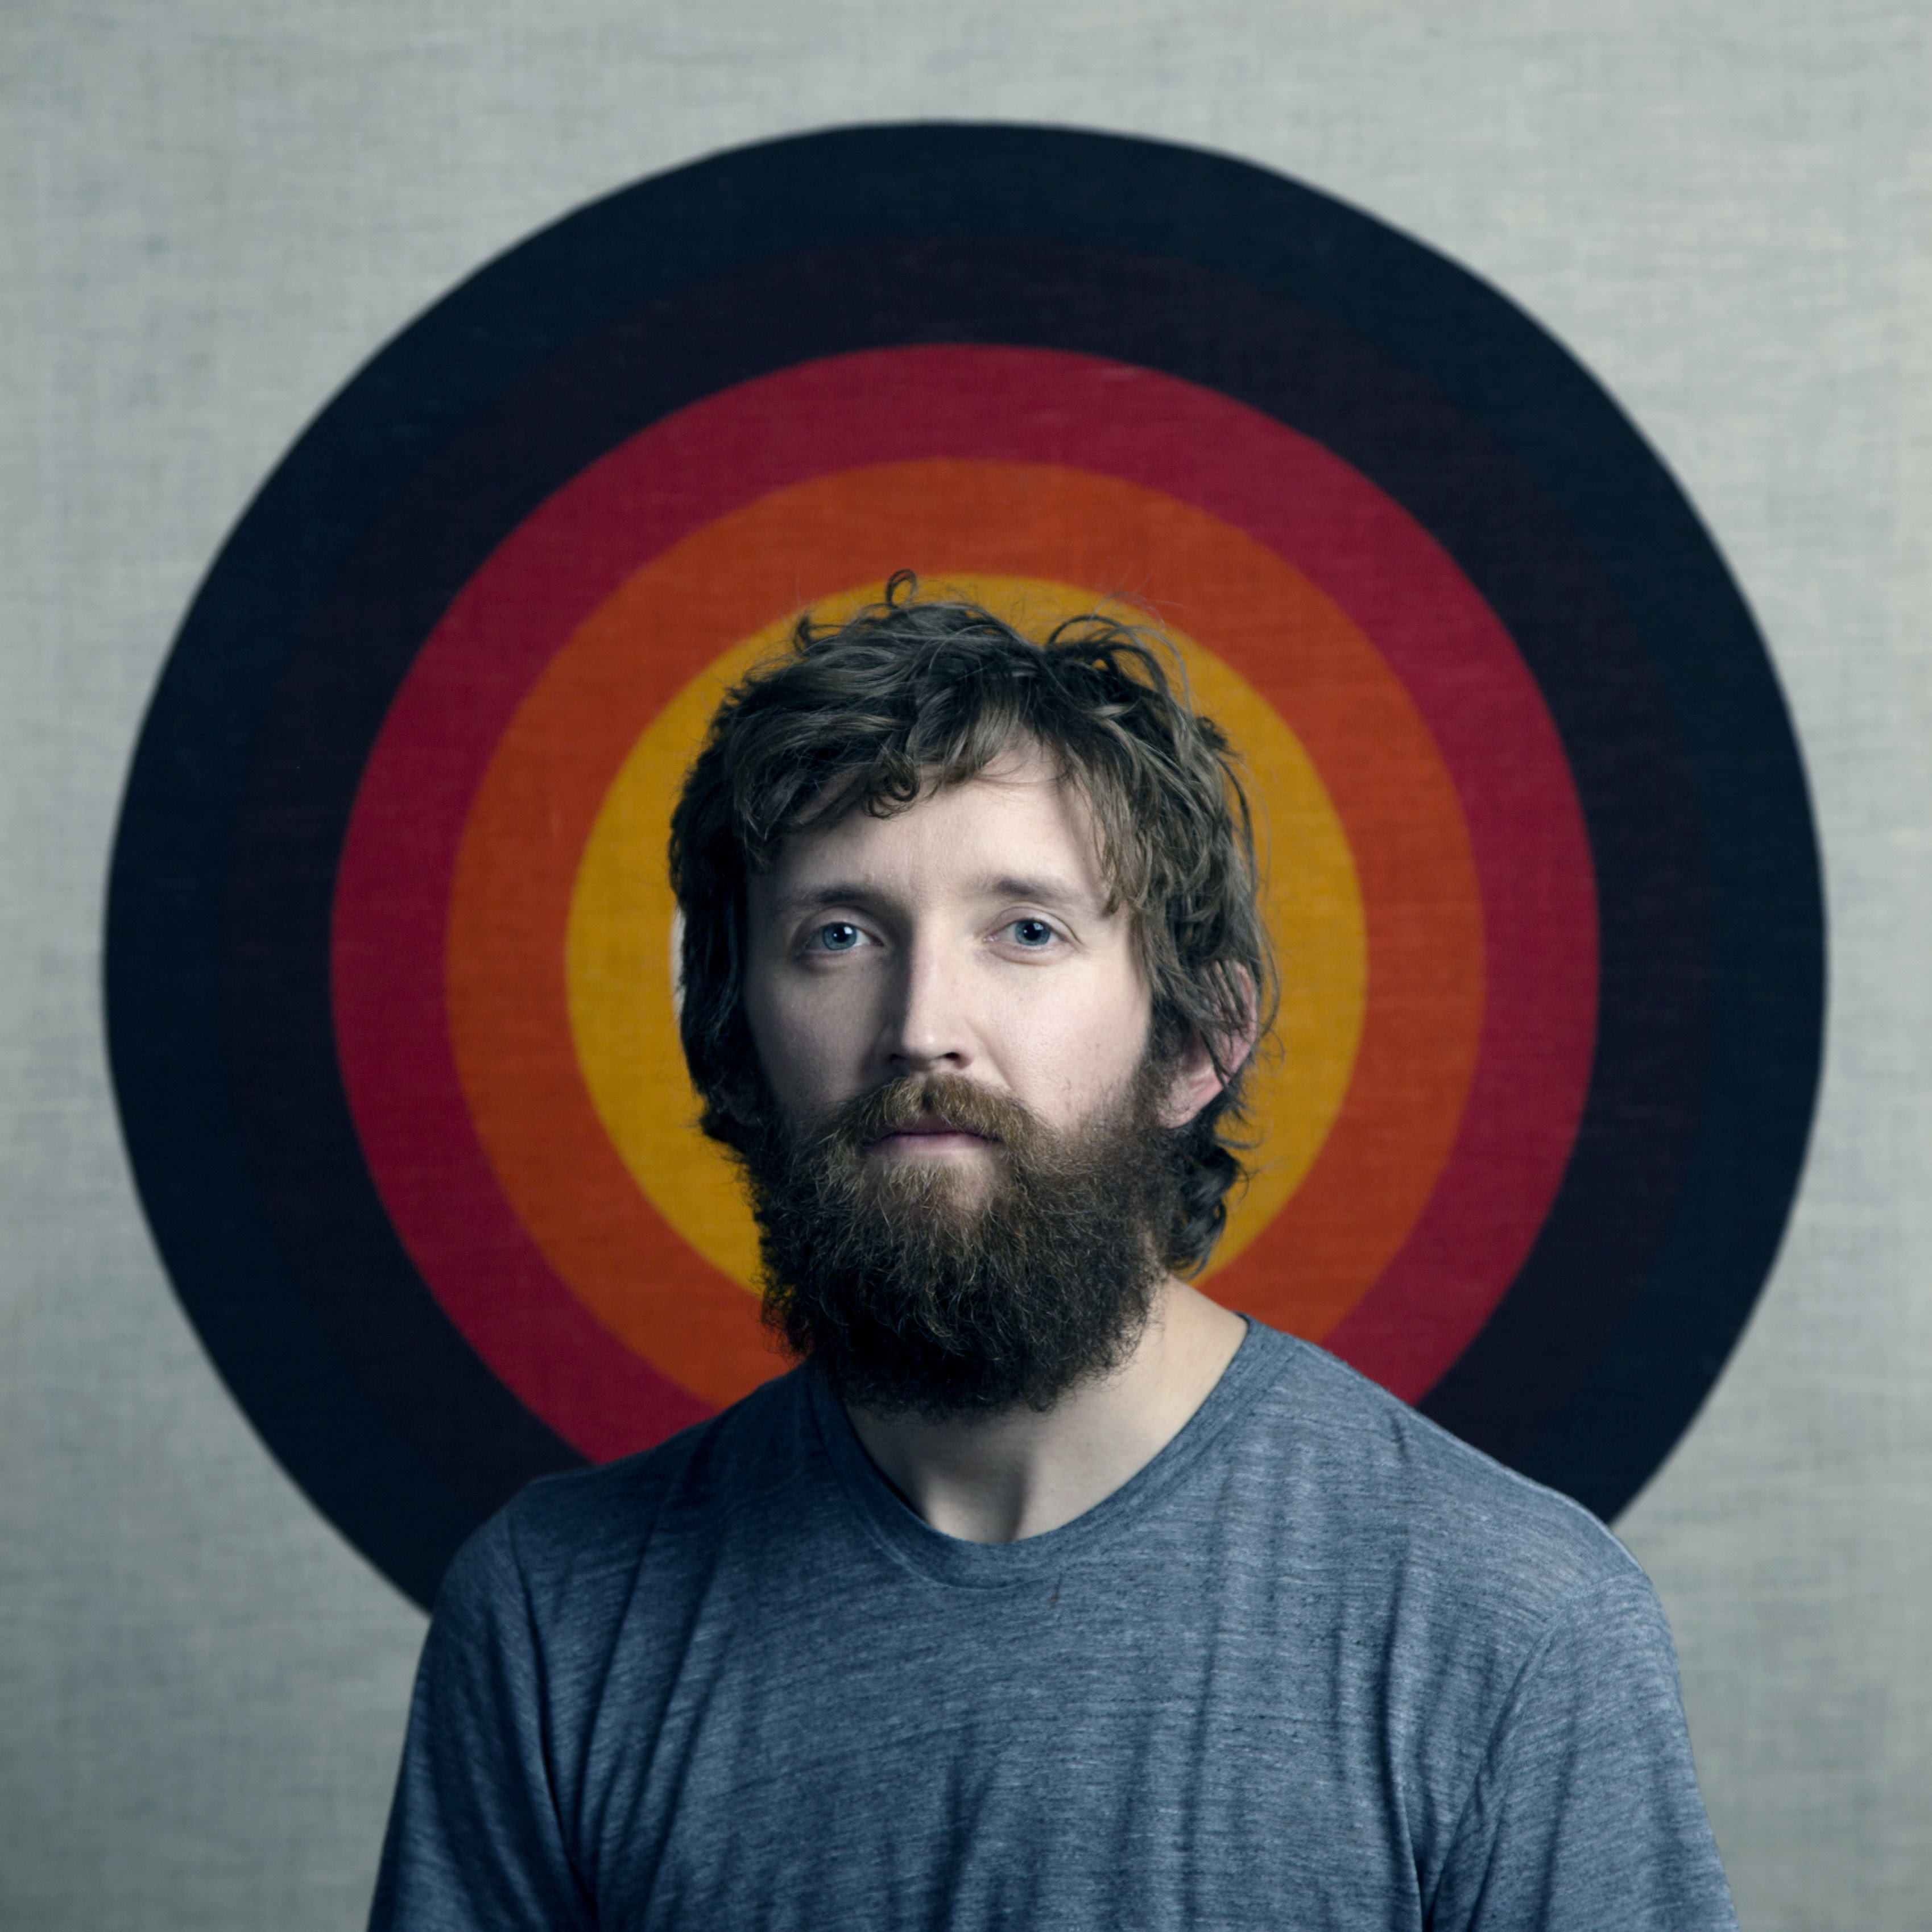 Sylvan Esso member Nick Sanborn announces new solo project 'Made of oak', as well as tour dates with Tushka.